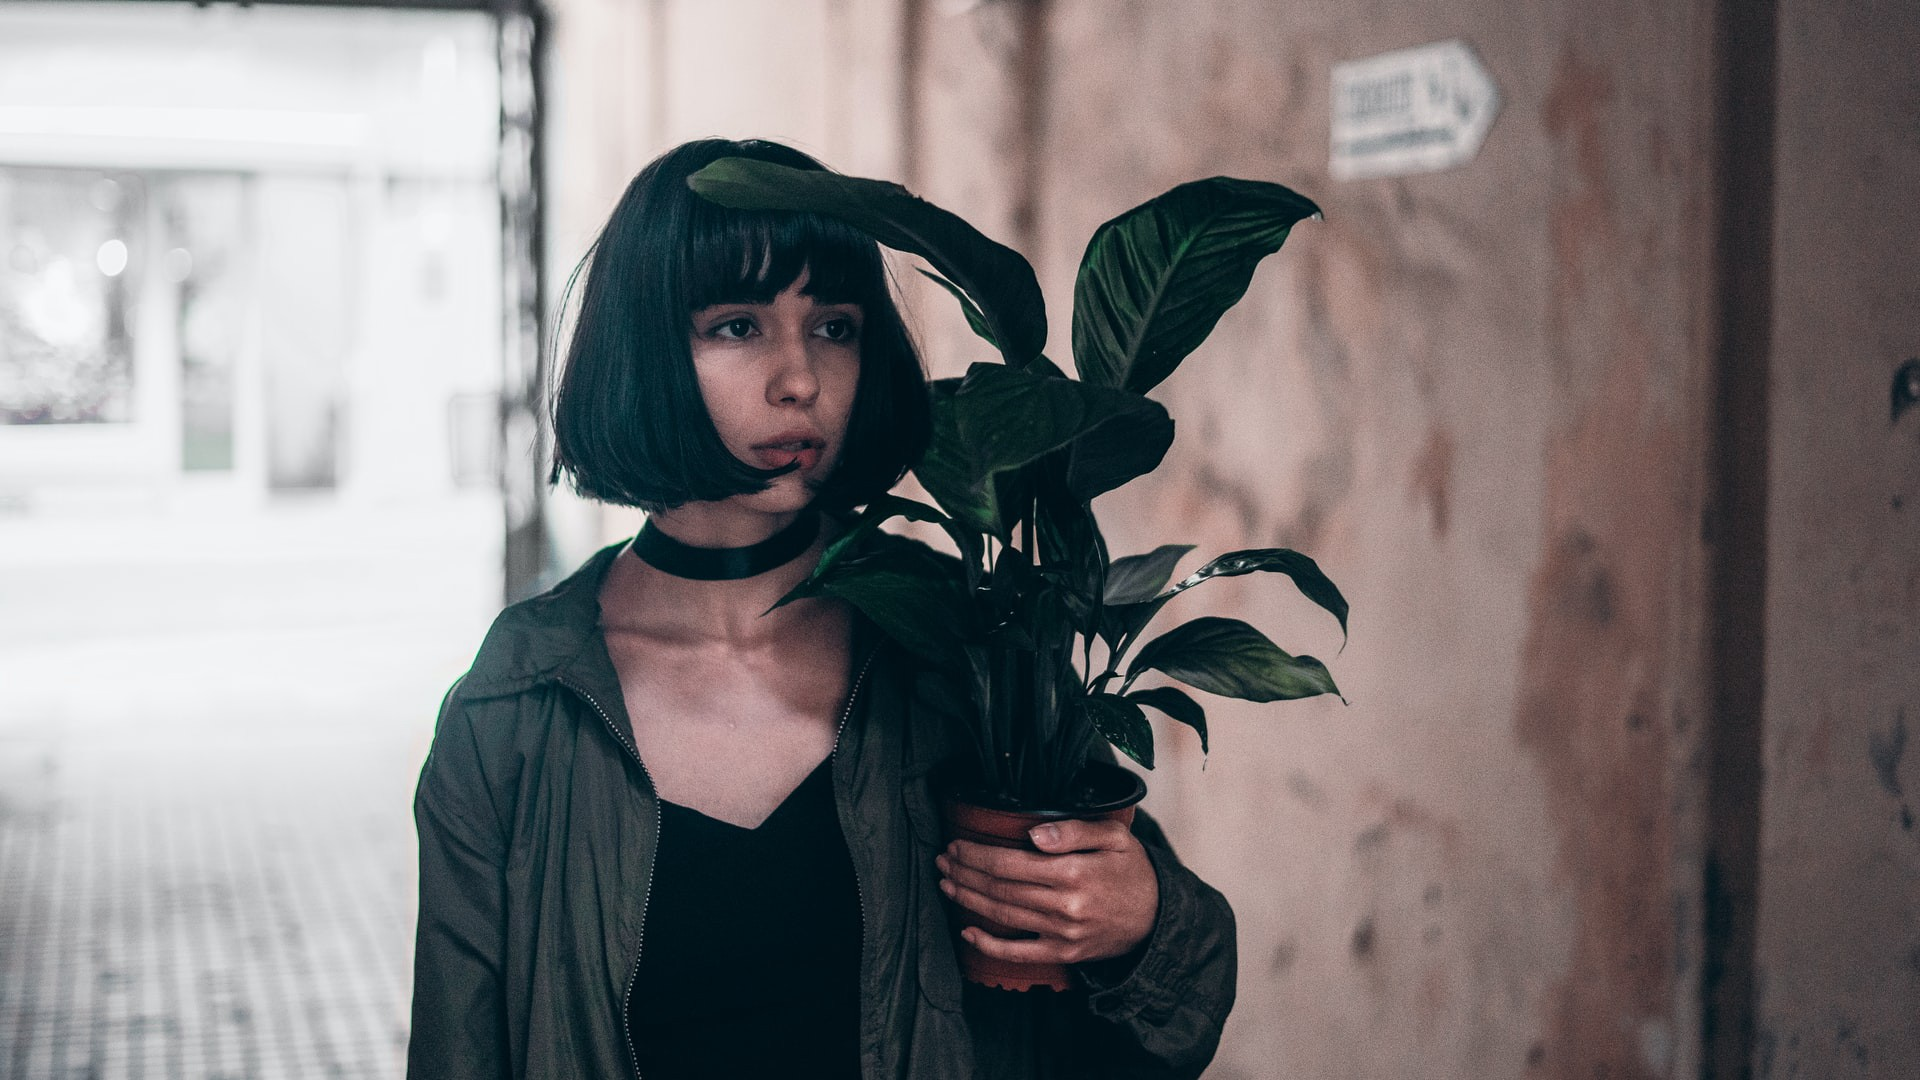 A black haired woman carrying around a potted plant.